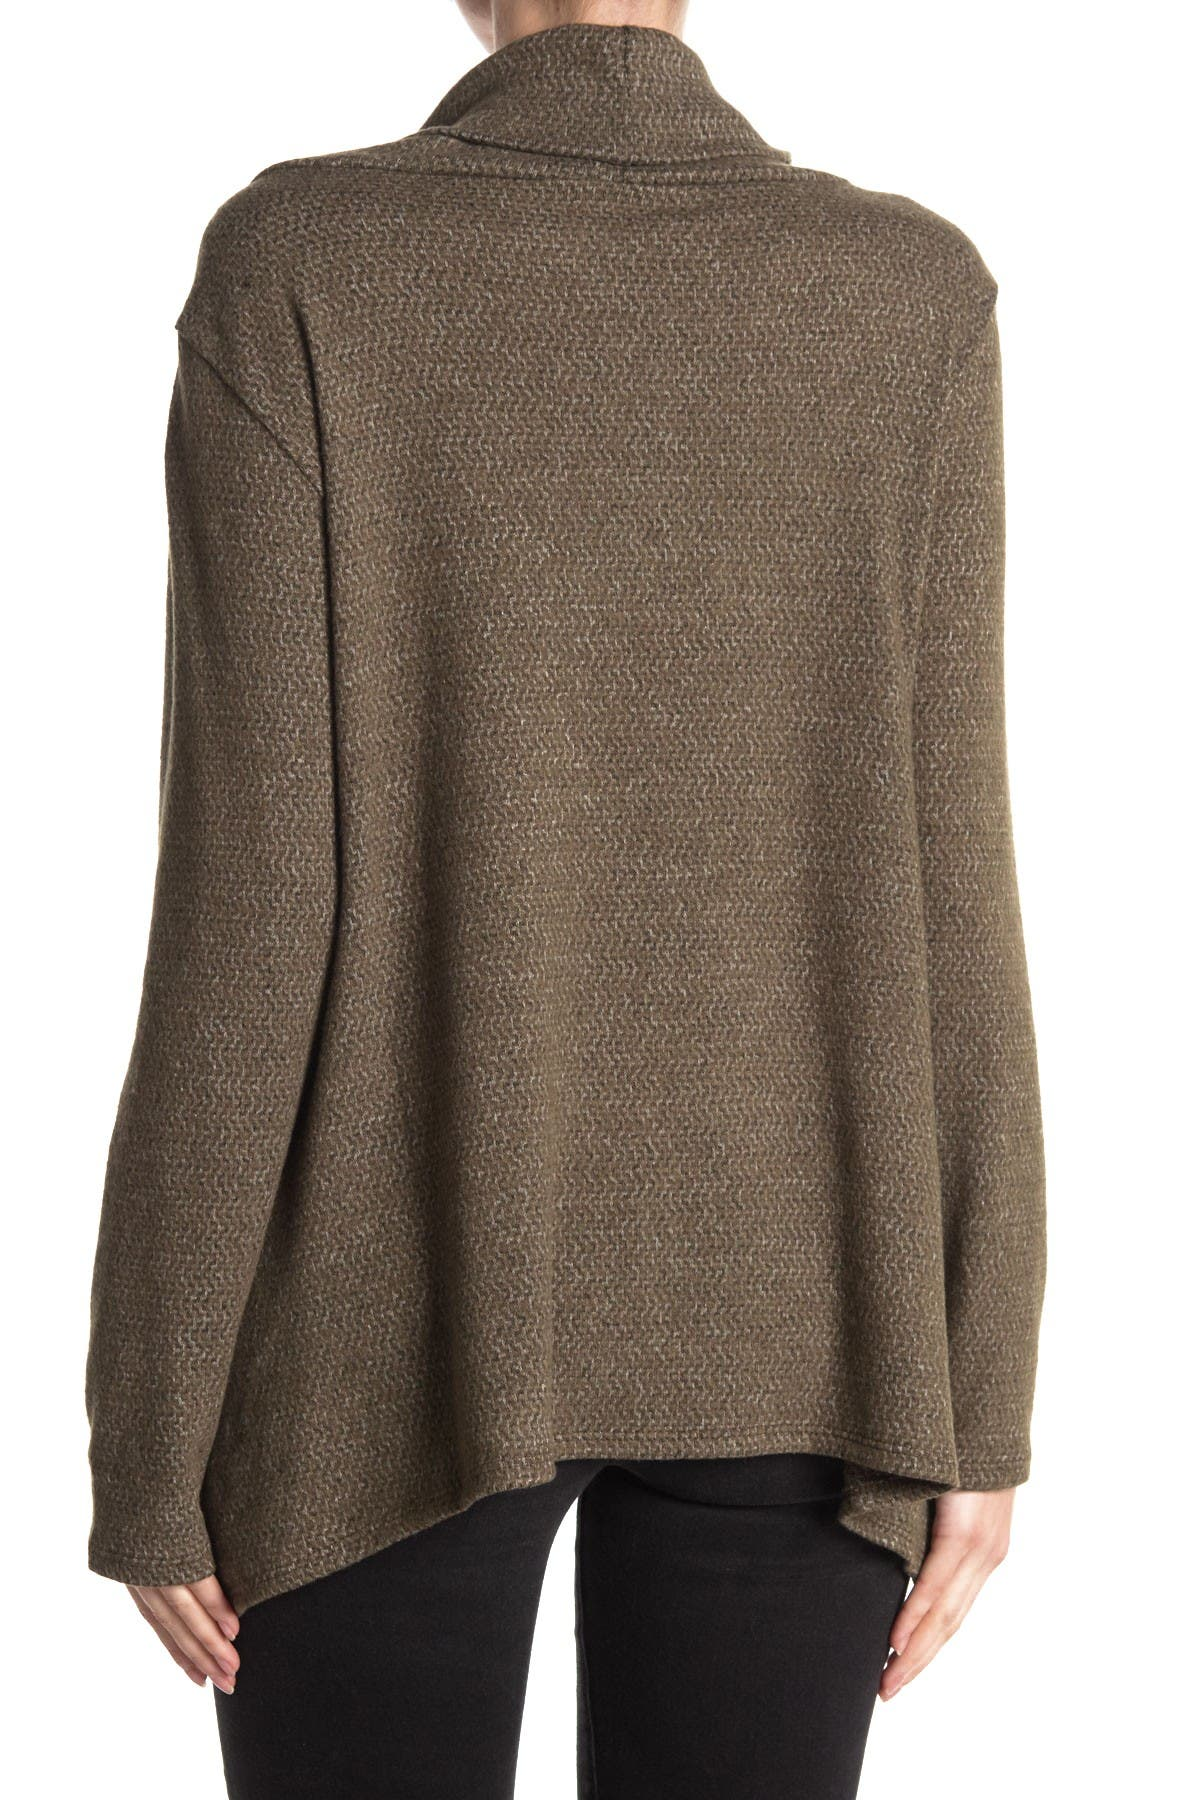 Image of Forgotten Grace Knit Cowl Neck Sweater